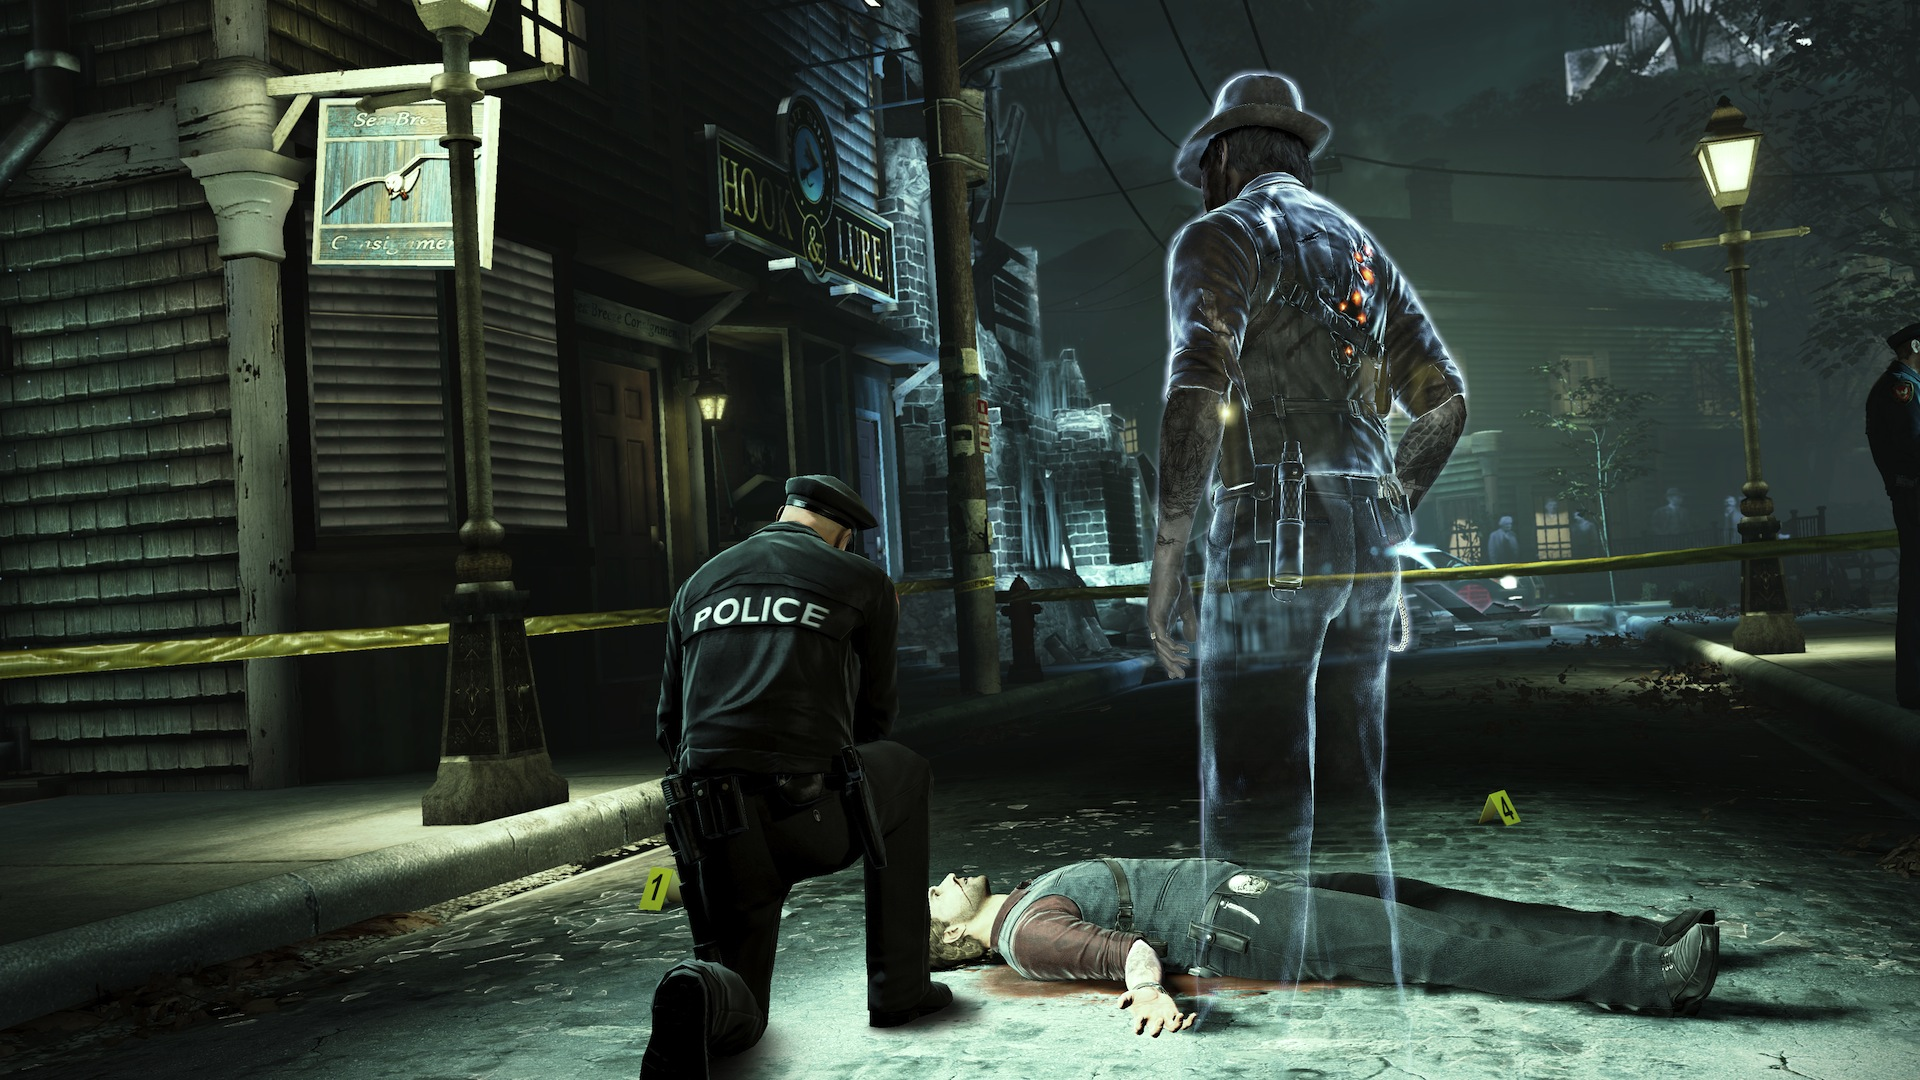 25 minutos de gameplay de Murdered: Soul Suspect [Video]